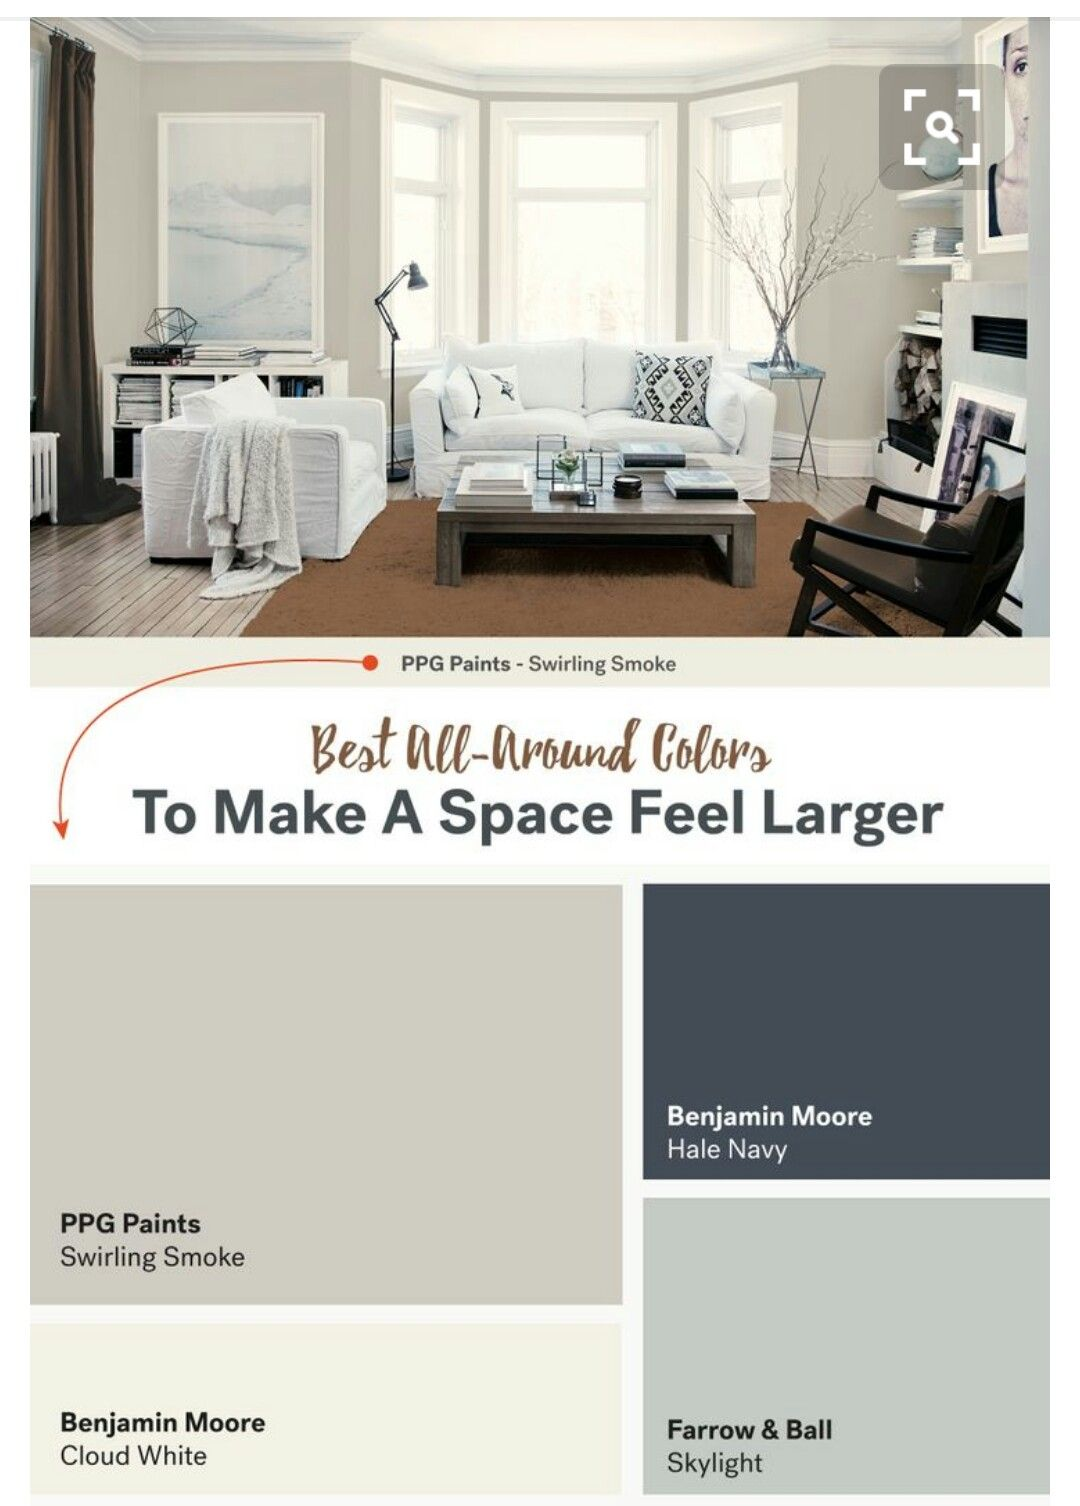 Swirling Smoke With Cloud White Trim Paint Colors For Living Room Living Room Colors Room Colors